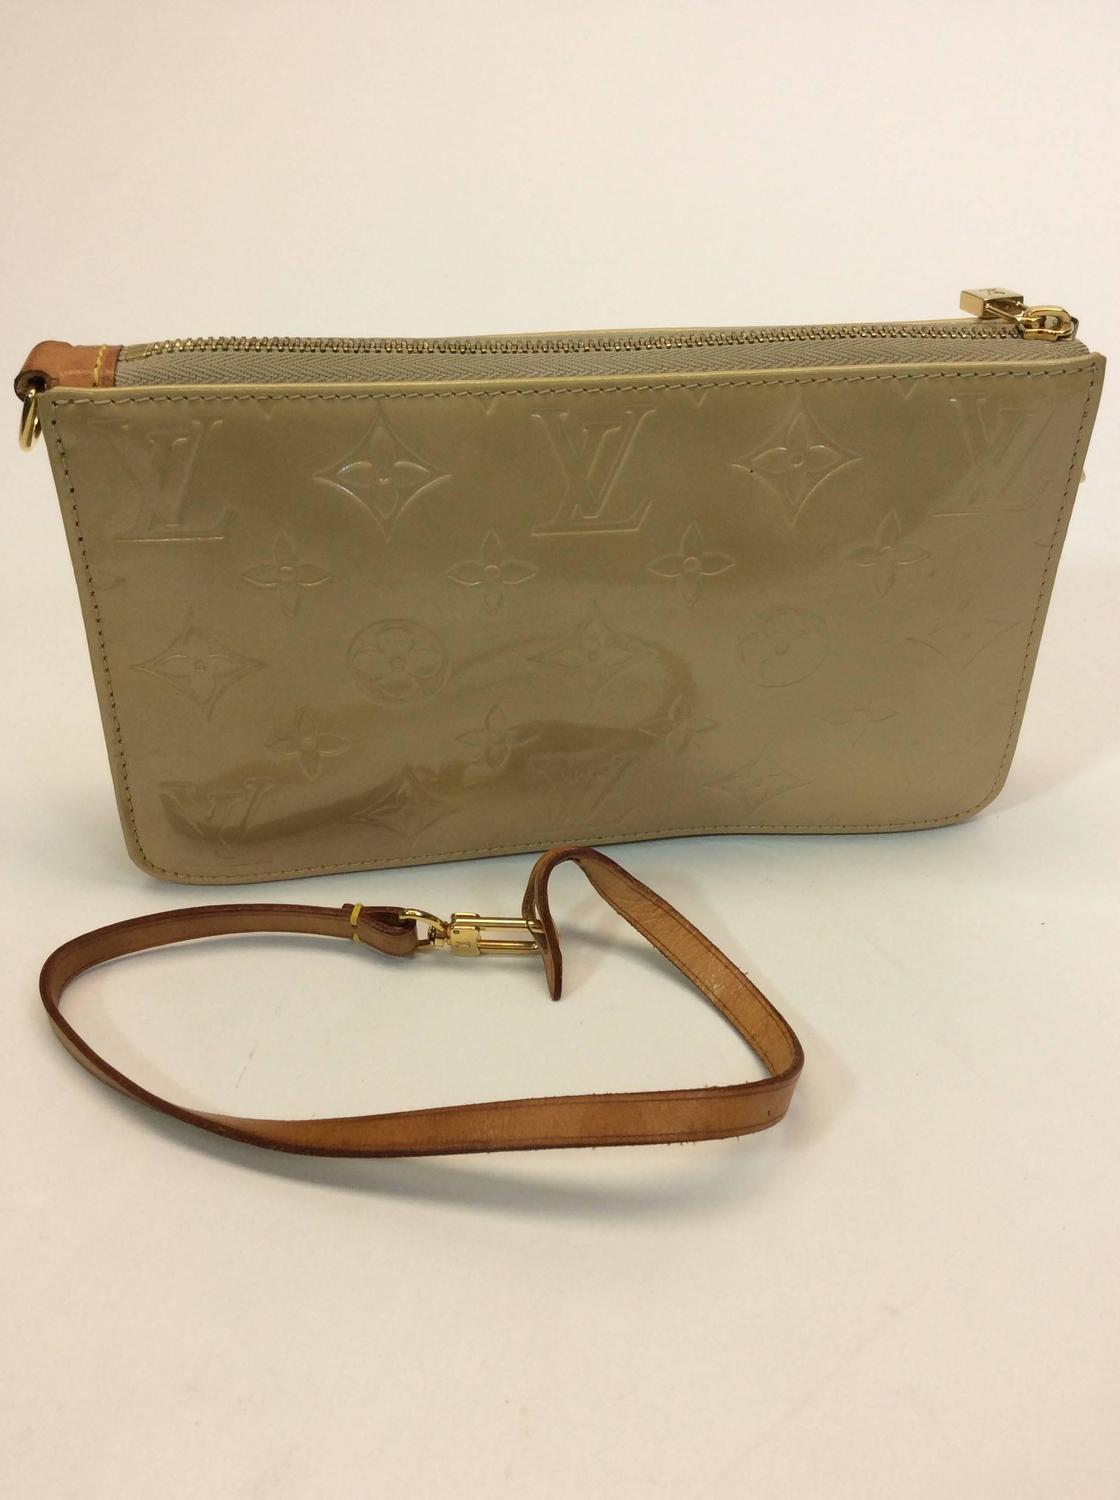 louis vuitton small tan patent leather monogrammed handbag for sale at 1stdibs